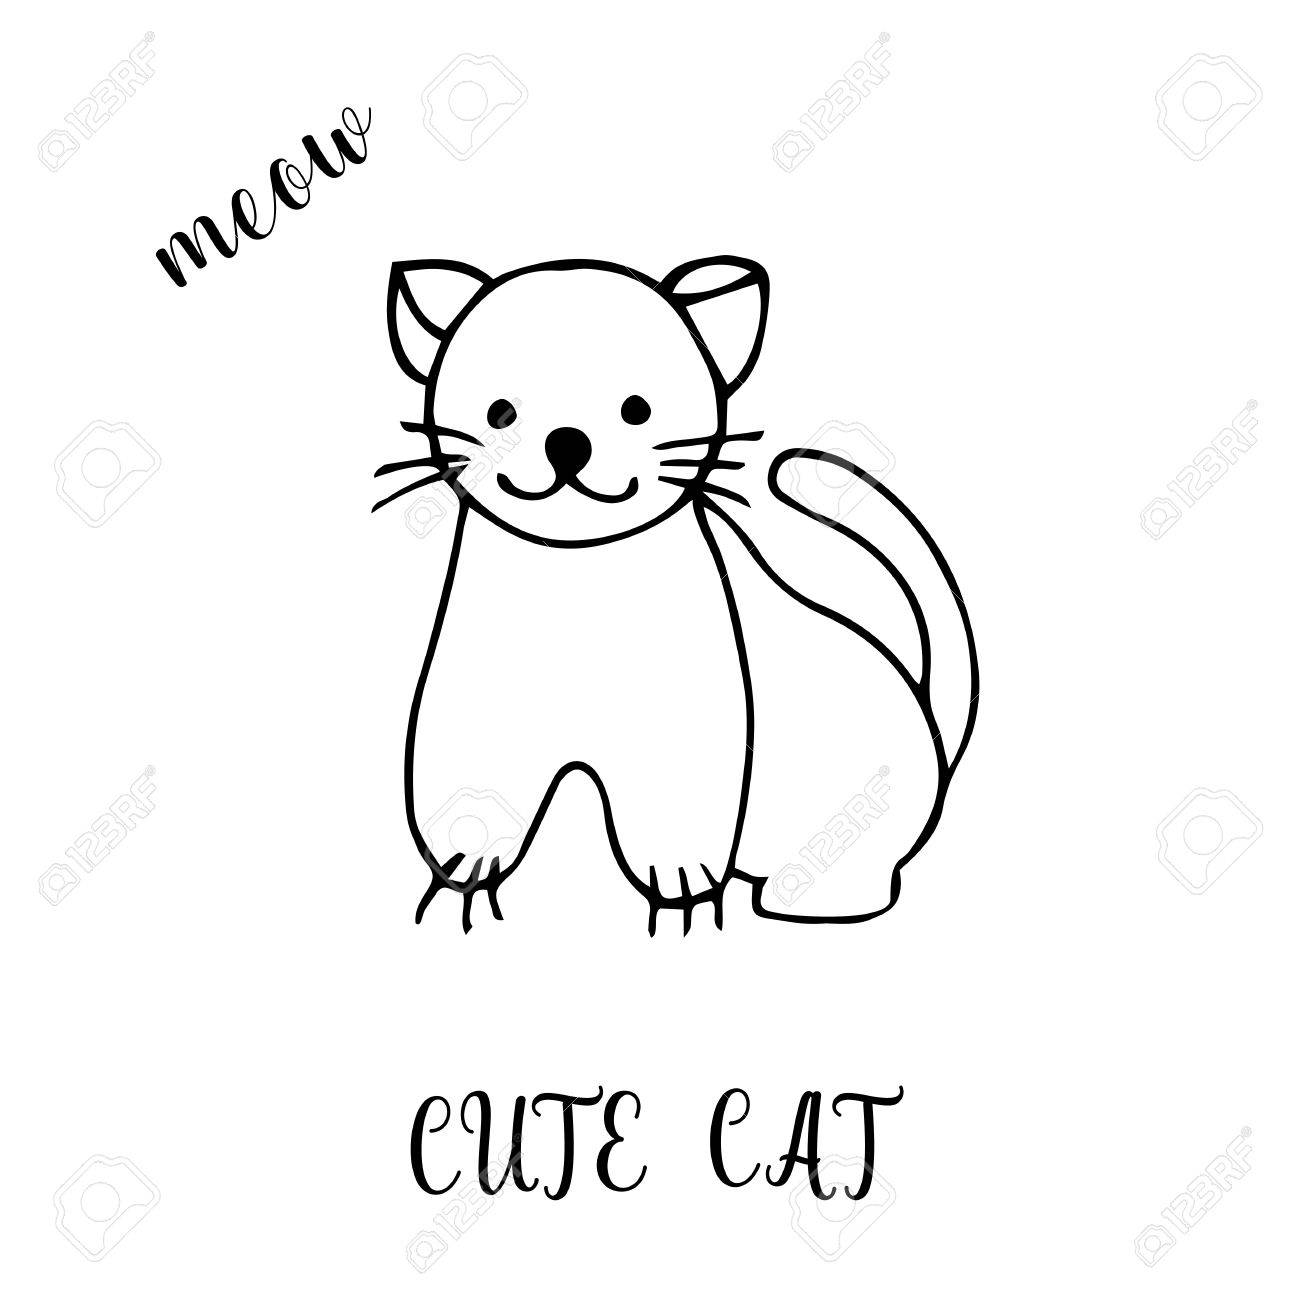 1300x1300 Childrens Drawing A Cute Cat. The Template For The Painting